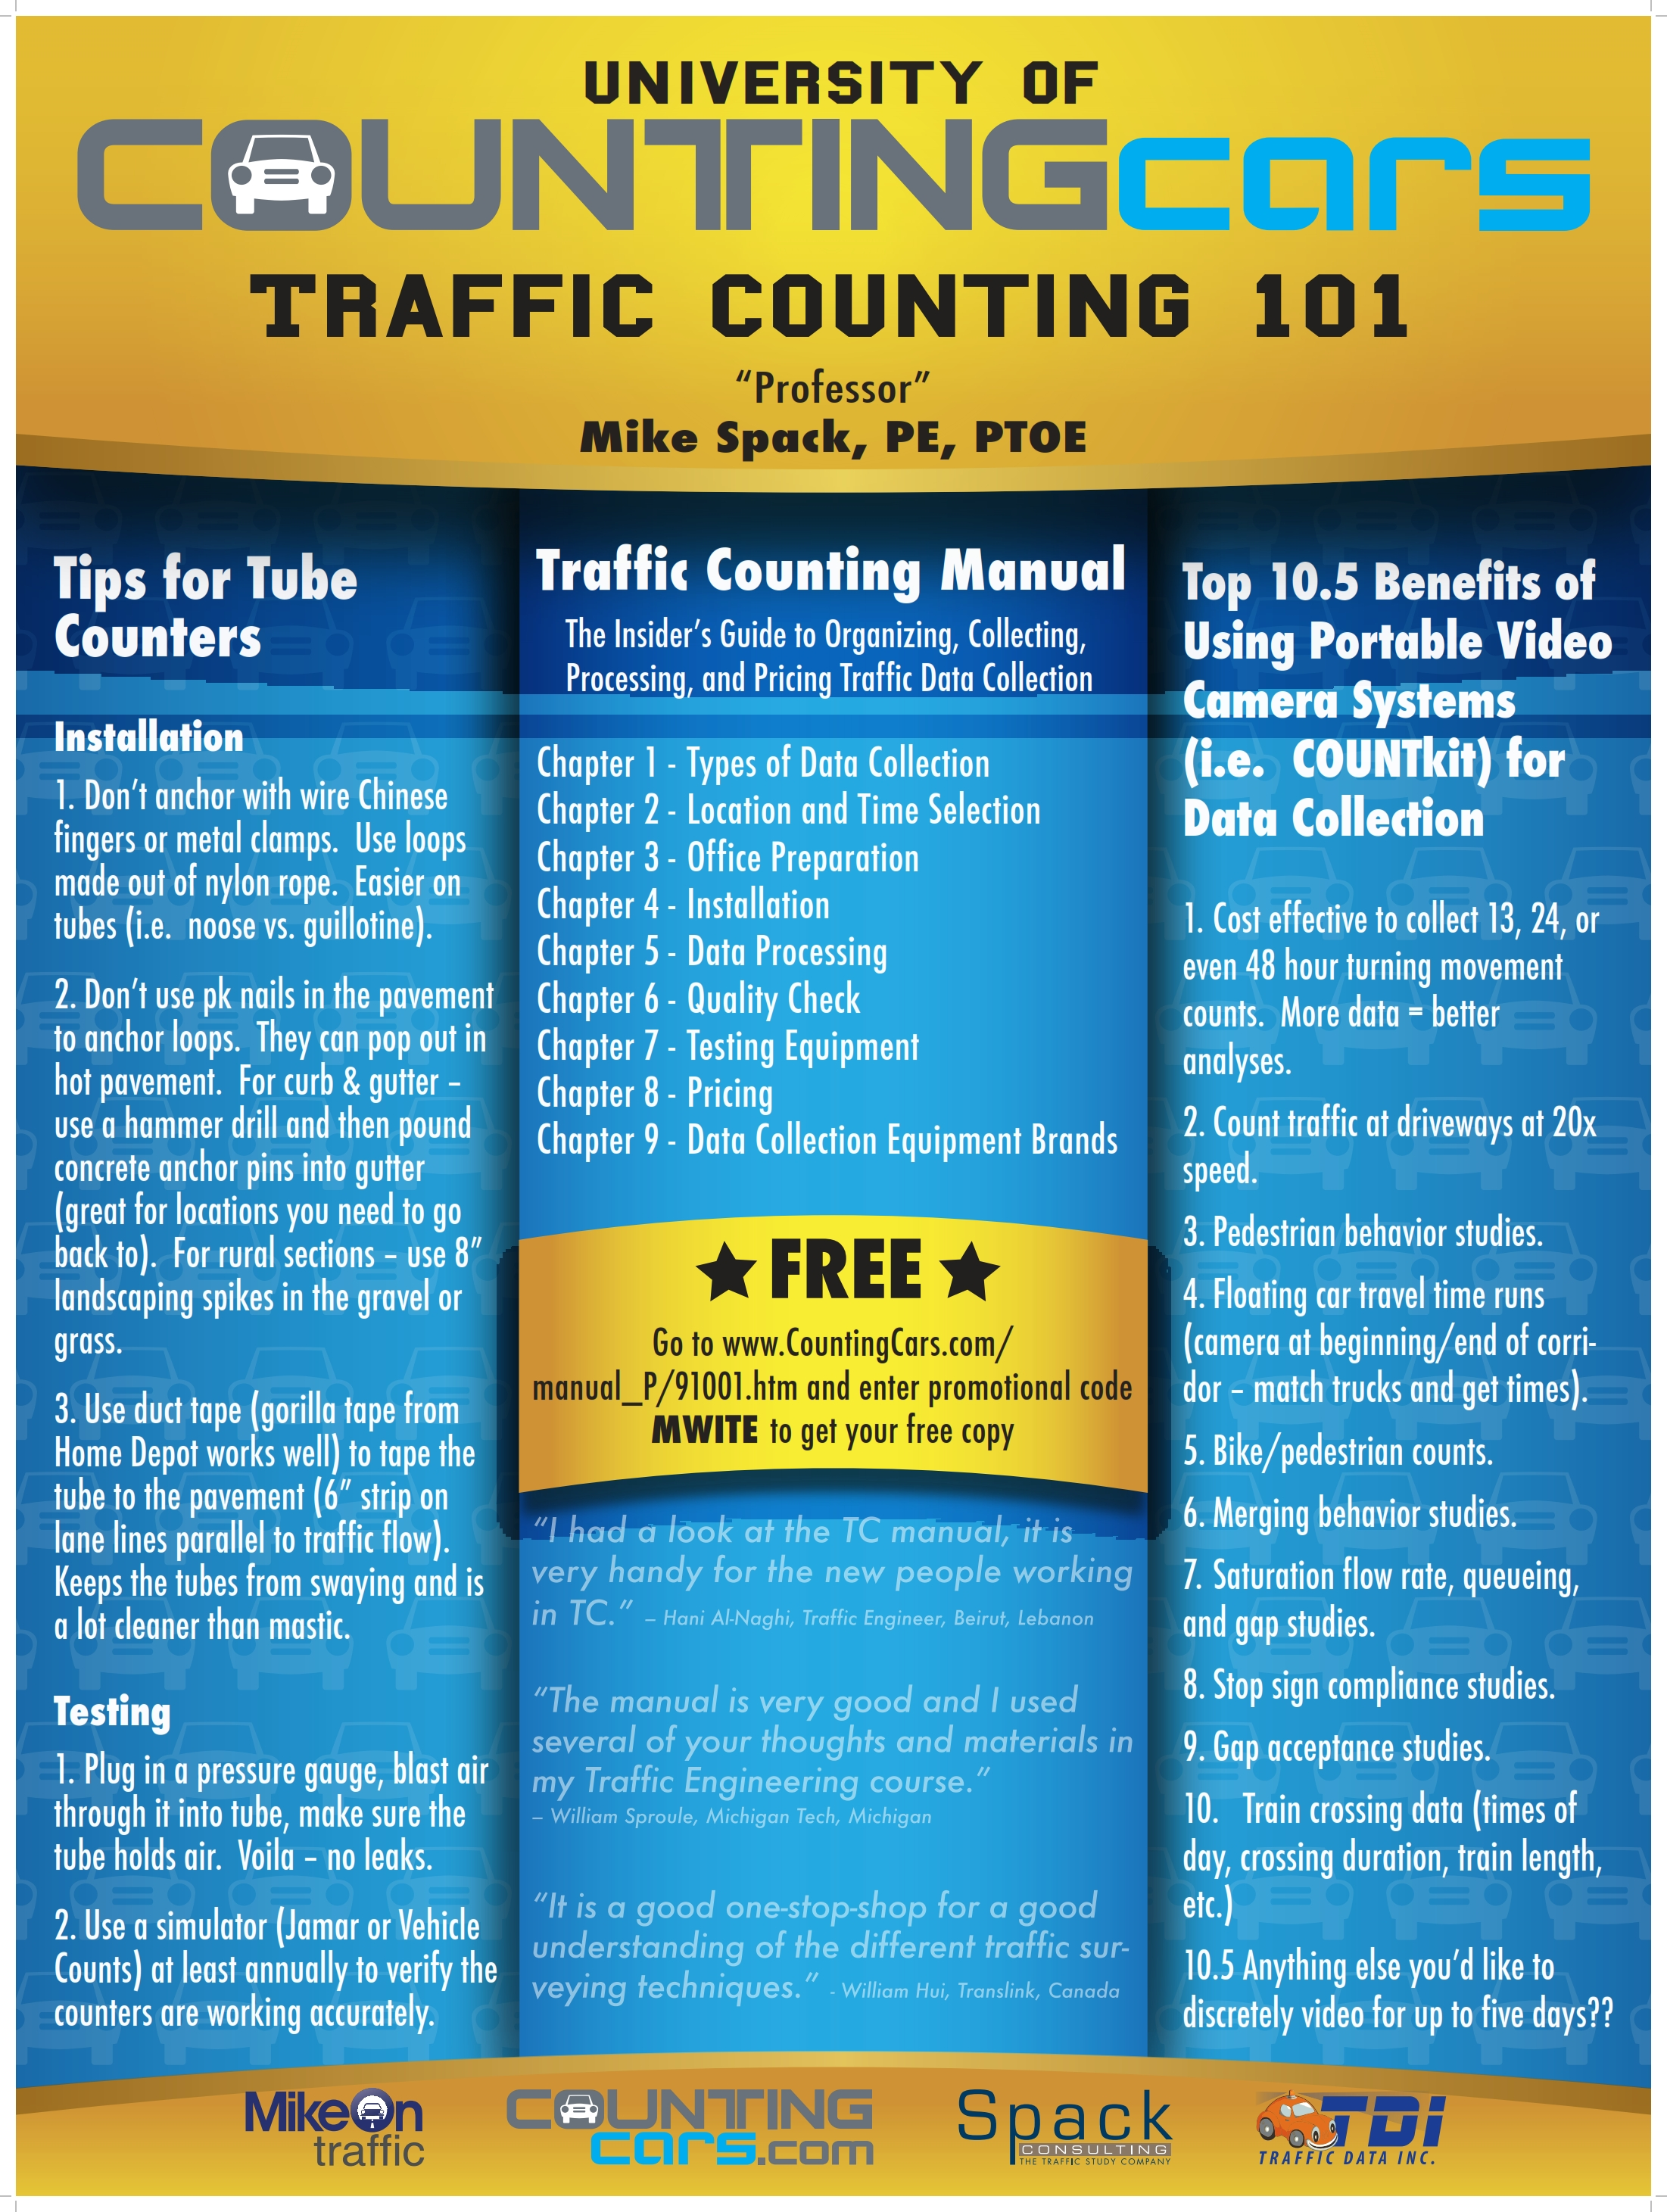 Traffic Counting 101 - Spack's Midwestern ITE Poster - Mike